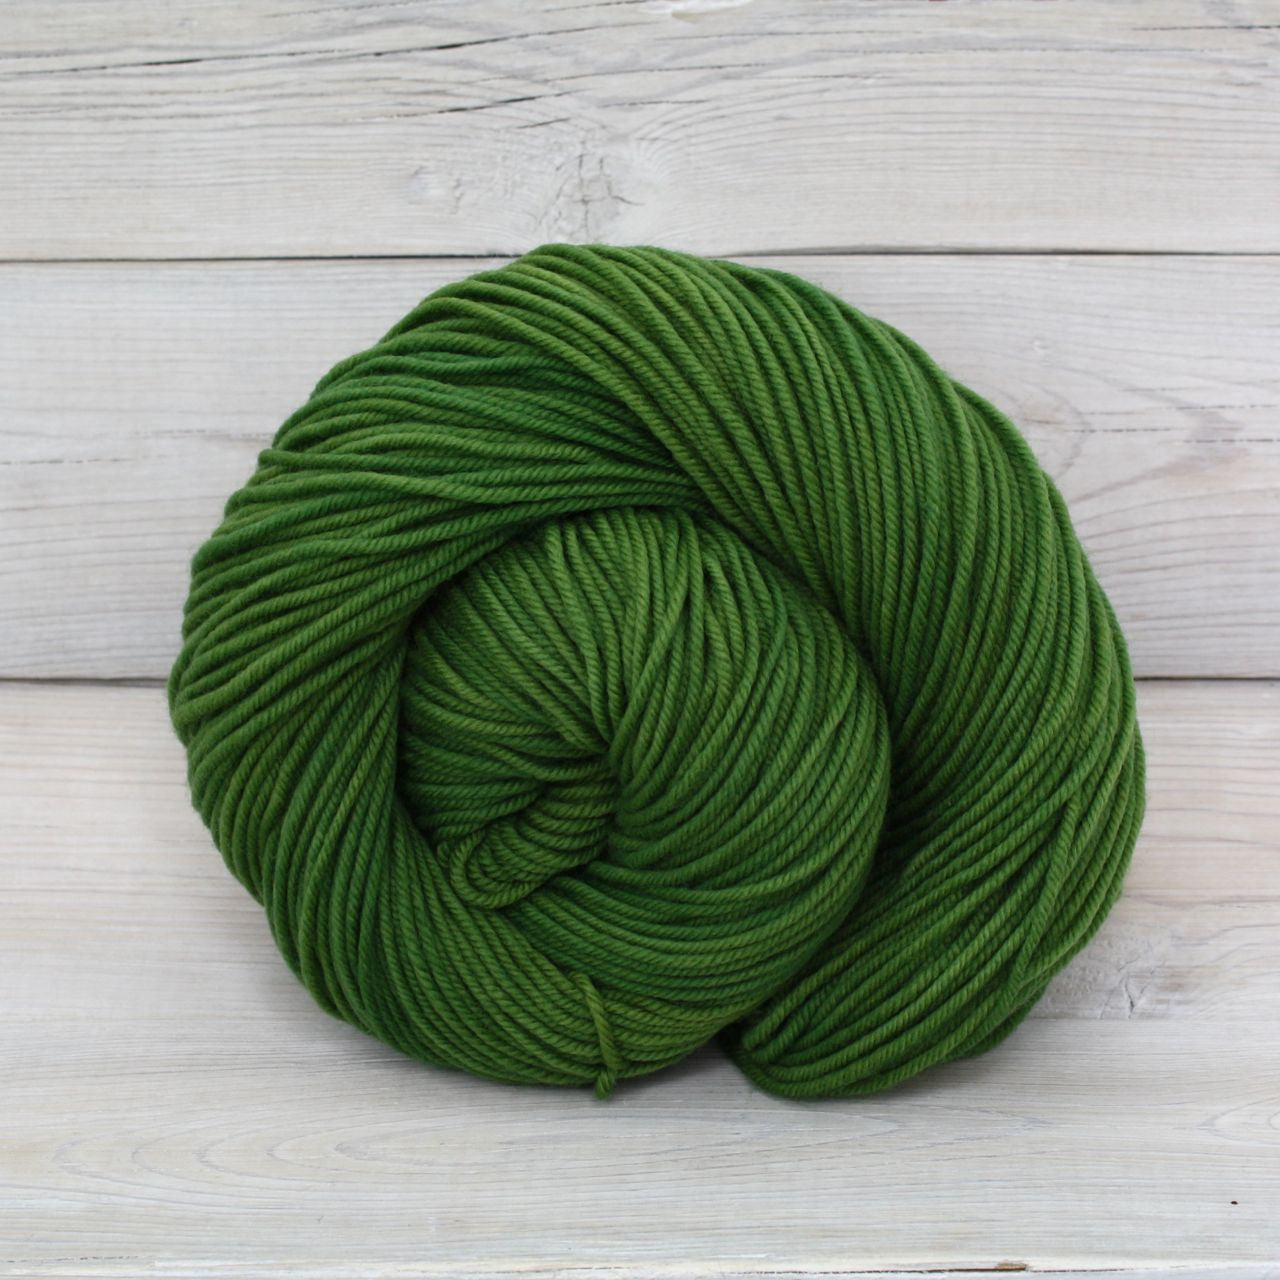 Luna Grey Fiber Arts Calypso Yarn | Colorway: Moss